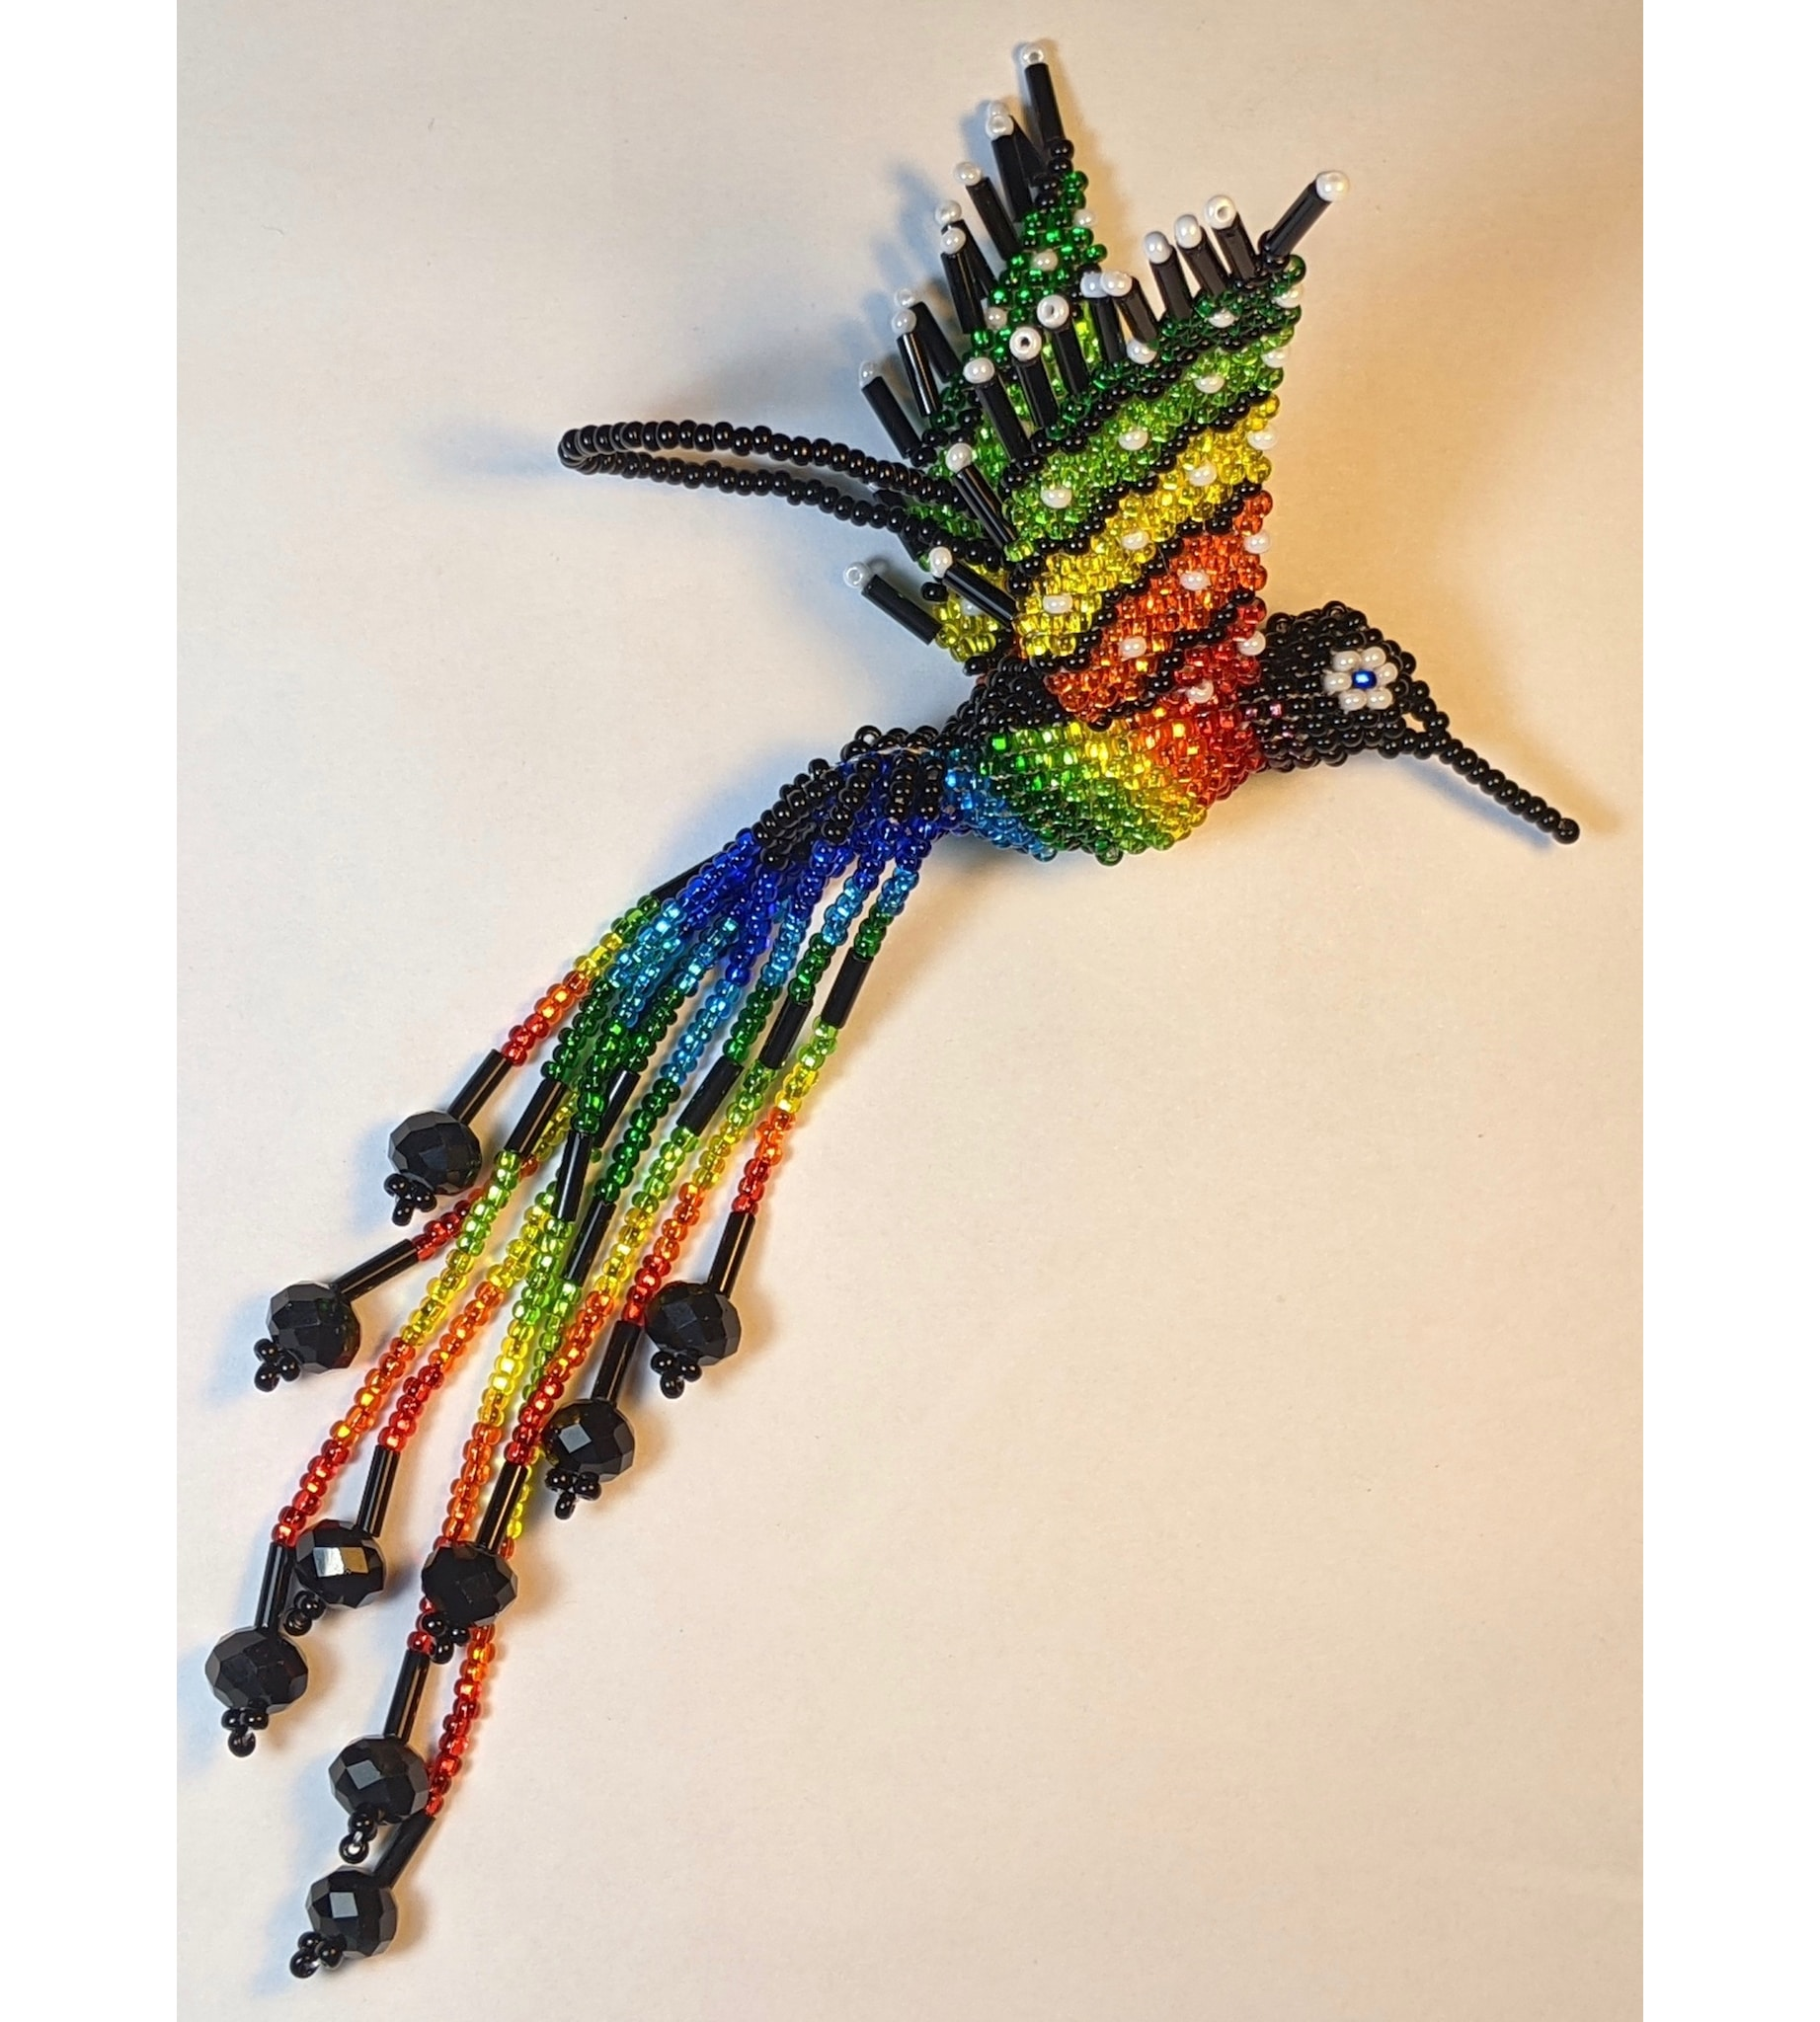 Hummingbird Beaded Ornament - Rainbow with Black and Pearl White Accents